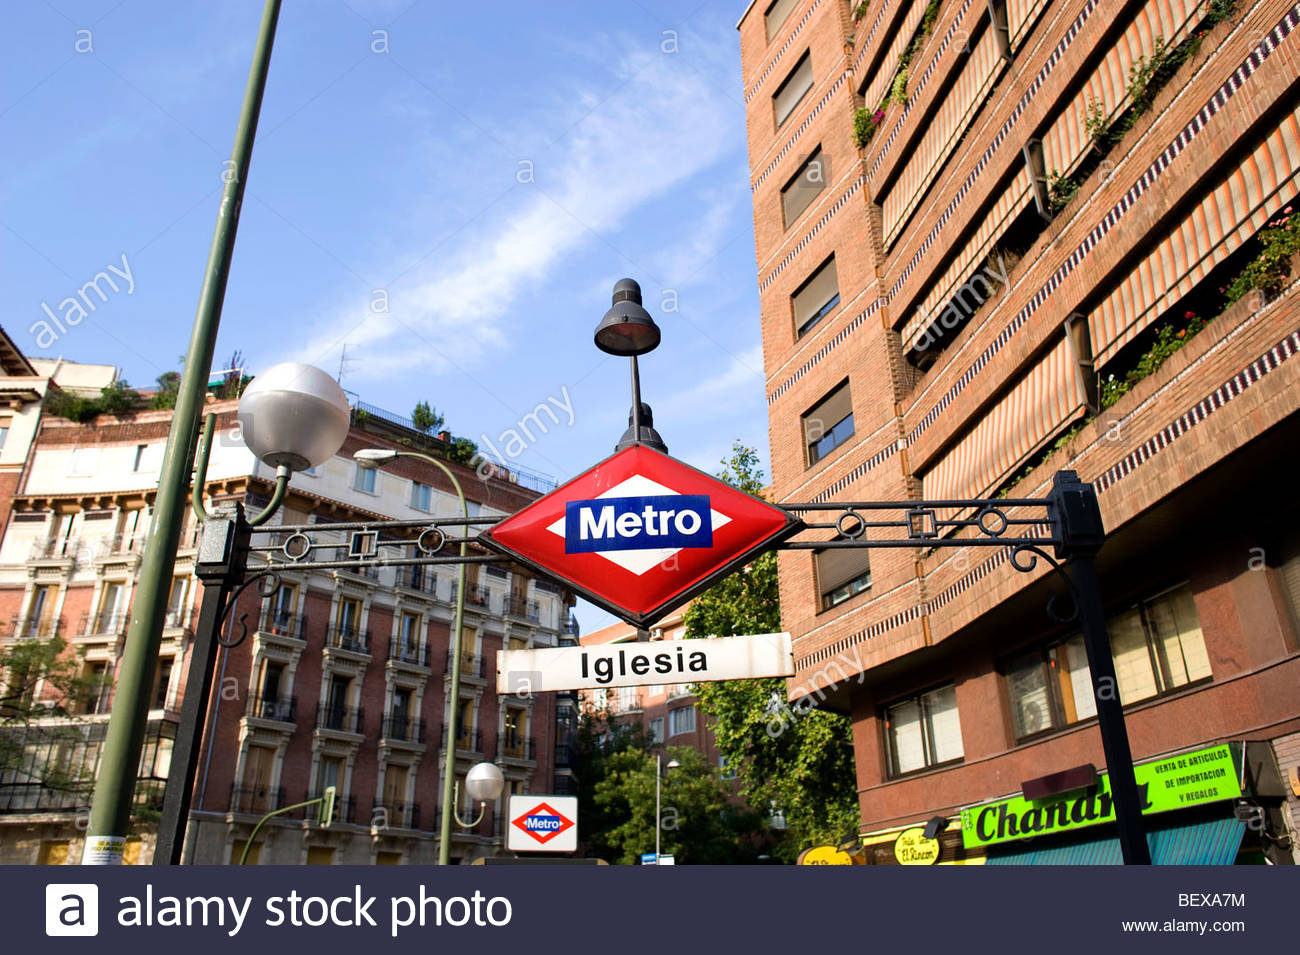 Madrid Subway Stock Photo, Royalty Free Image: 26394360 - Alamy